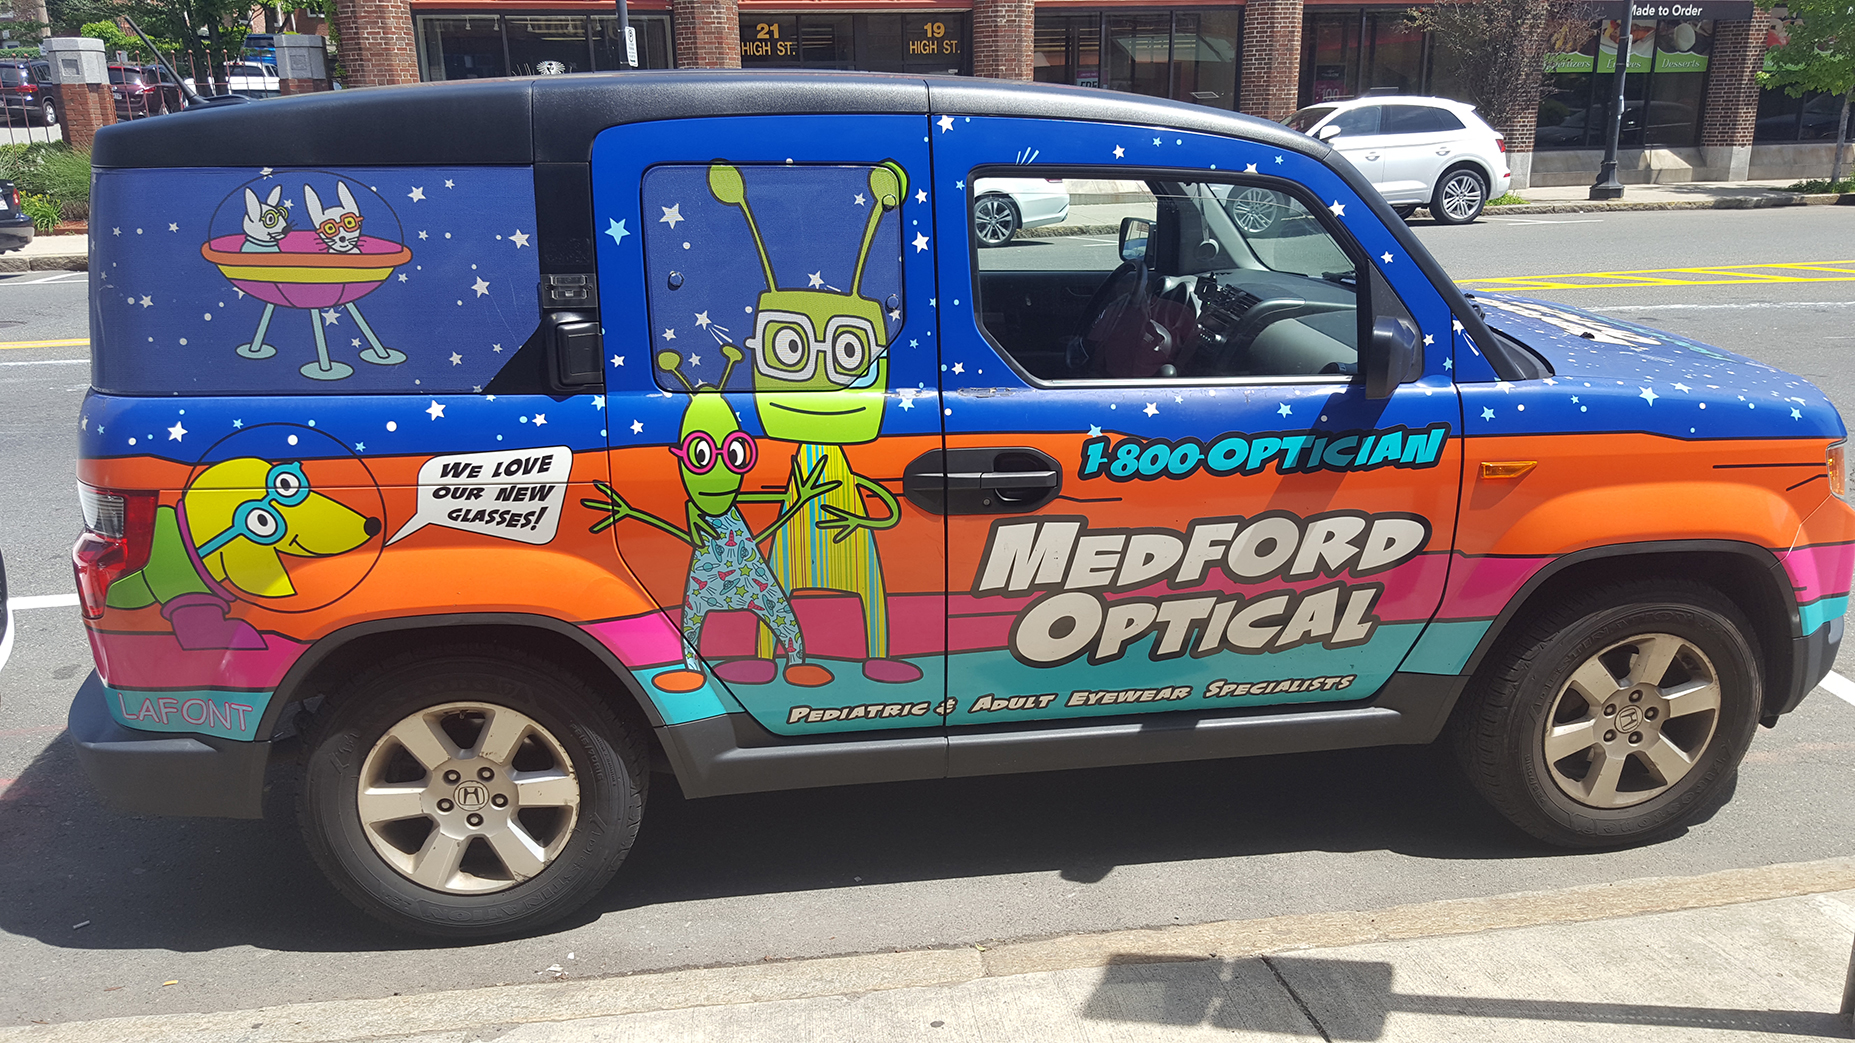 The Medford Optical Vehicle has become a stoplight conversation piece.